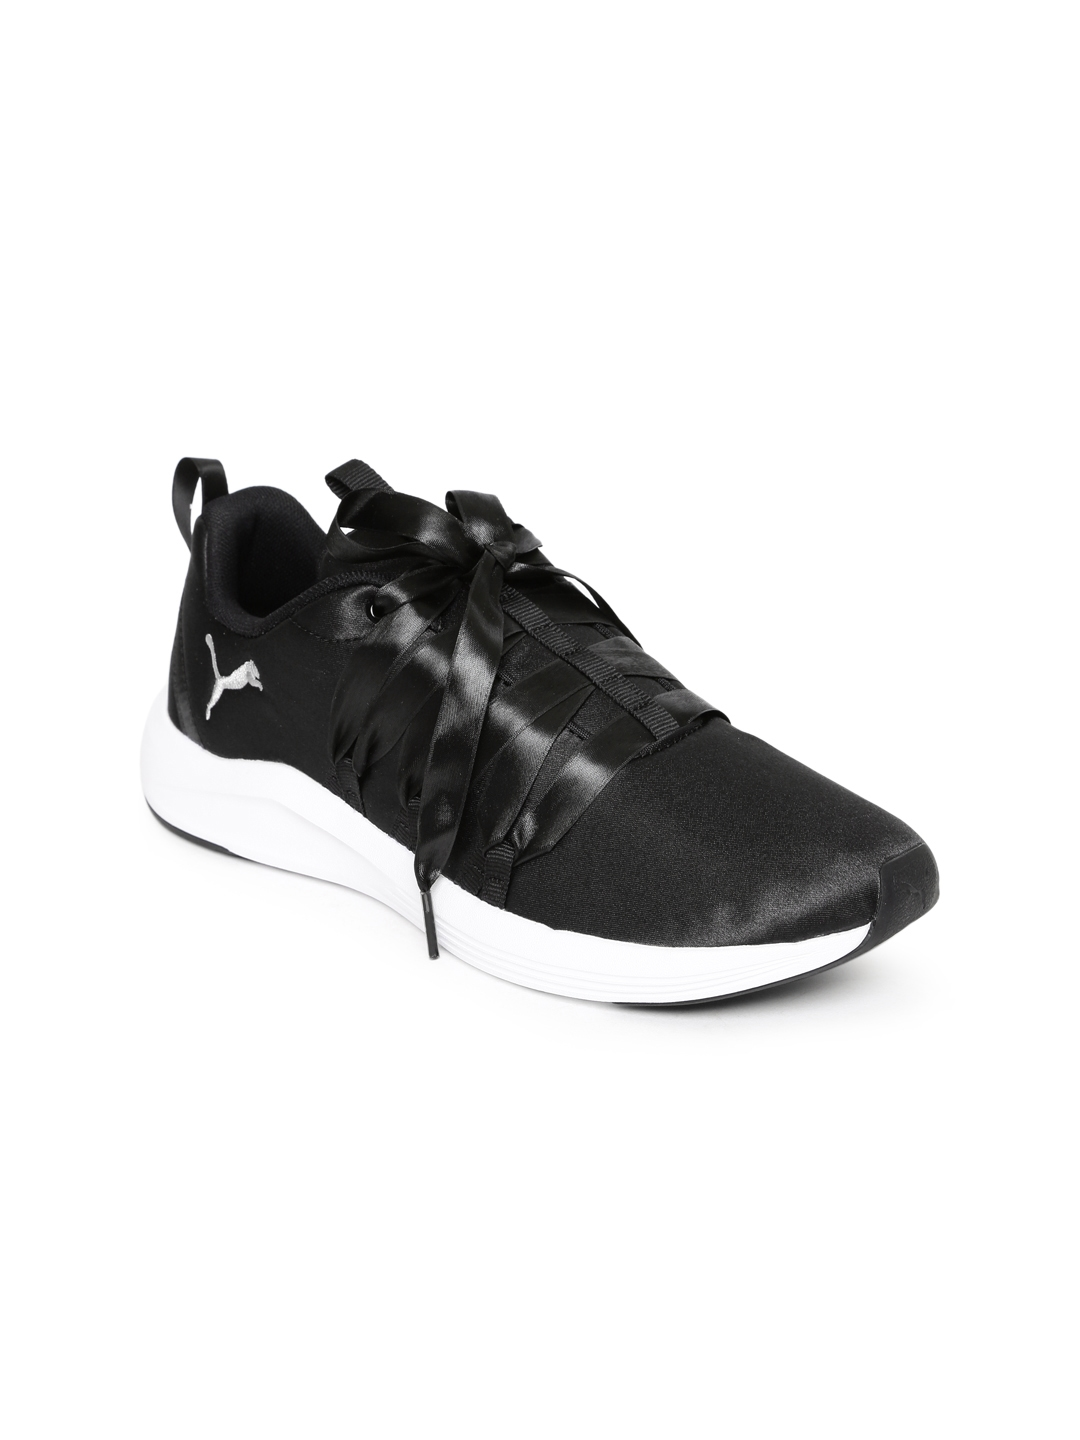 094751649da9 Buy Puma Women Black Prowl Alt Satin Training Shoes - Sports Shoes ...